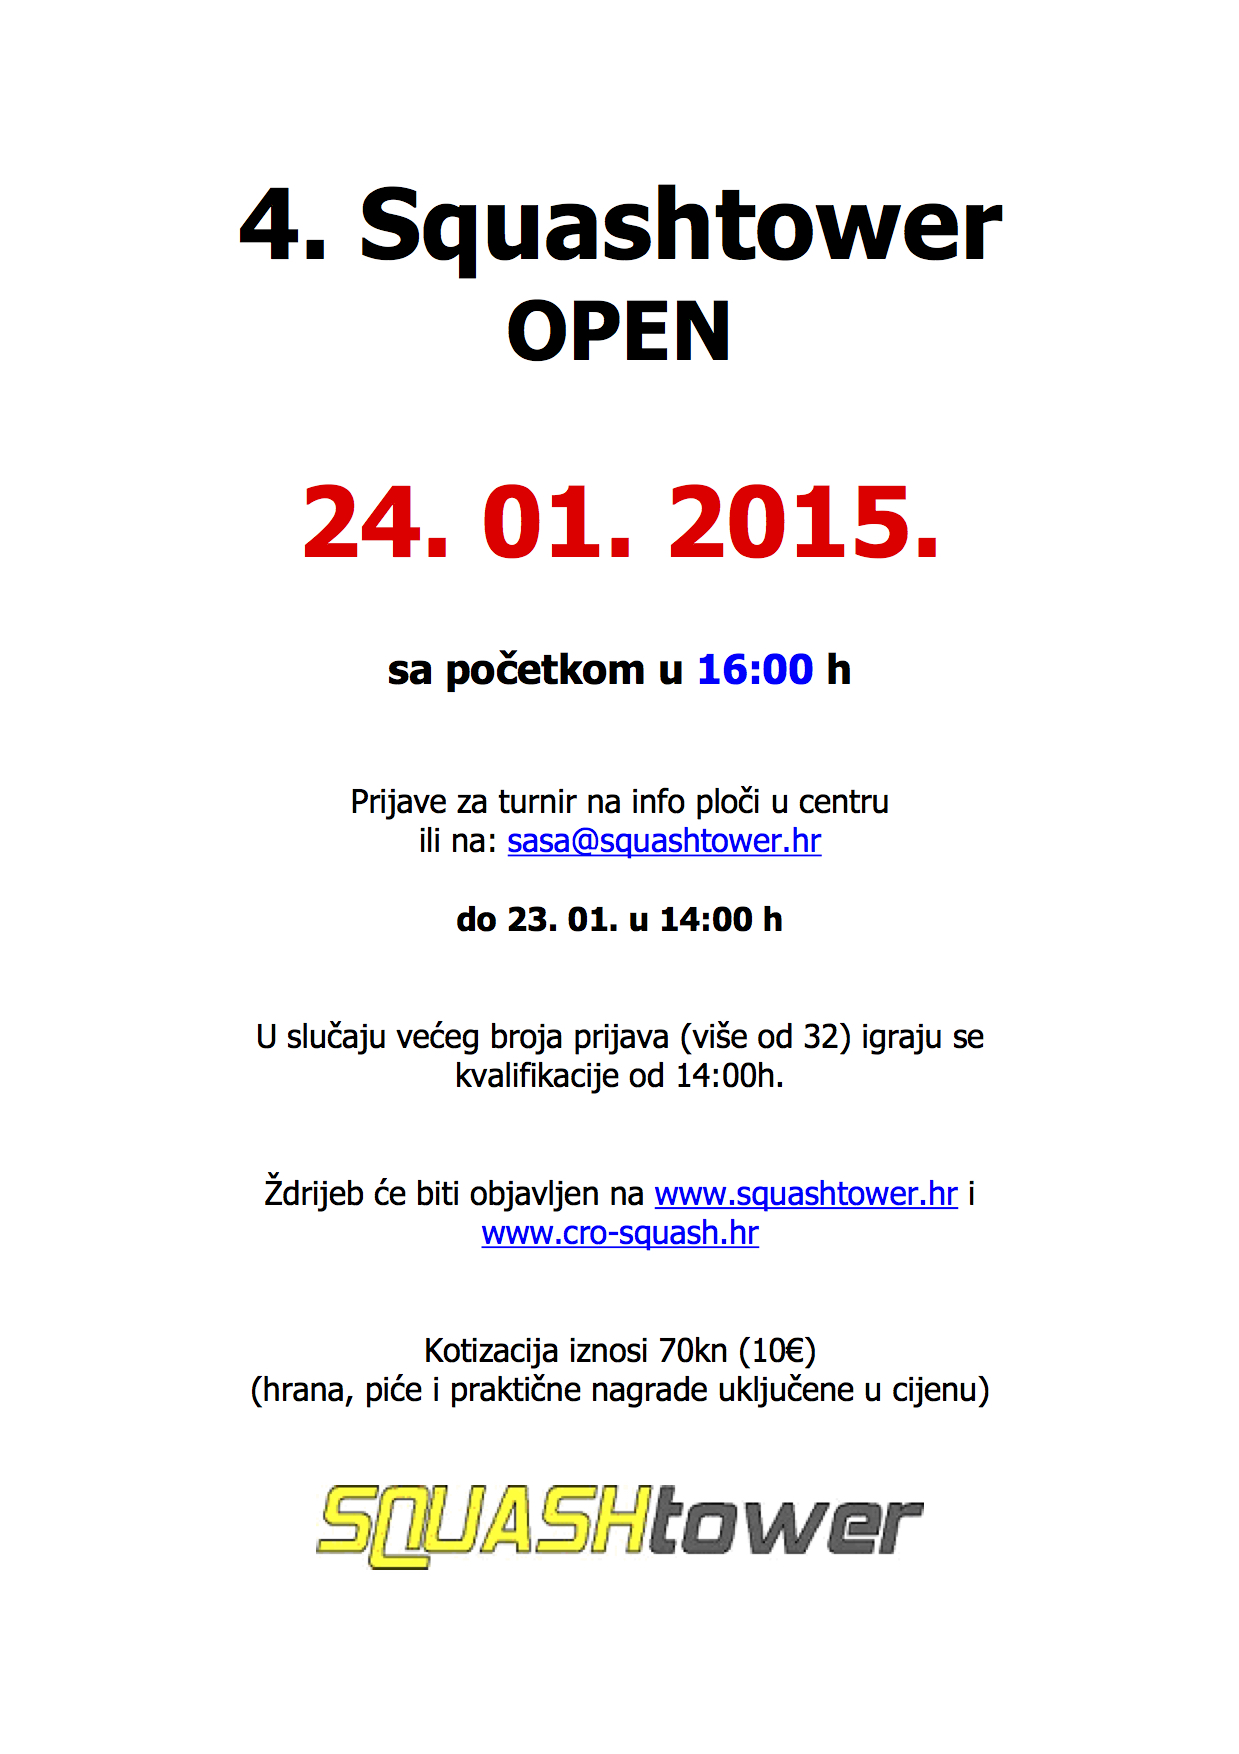 4. SquashTower Open - najava